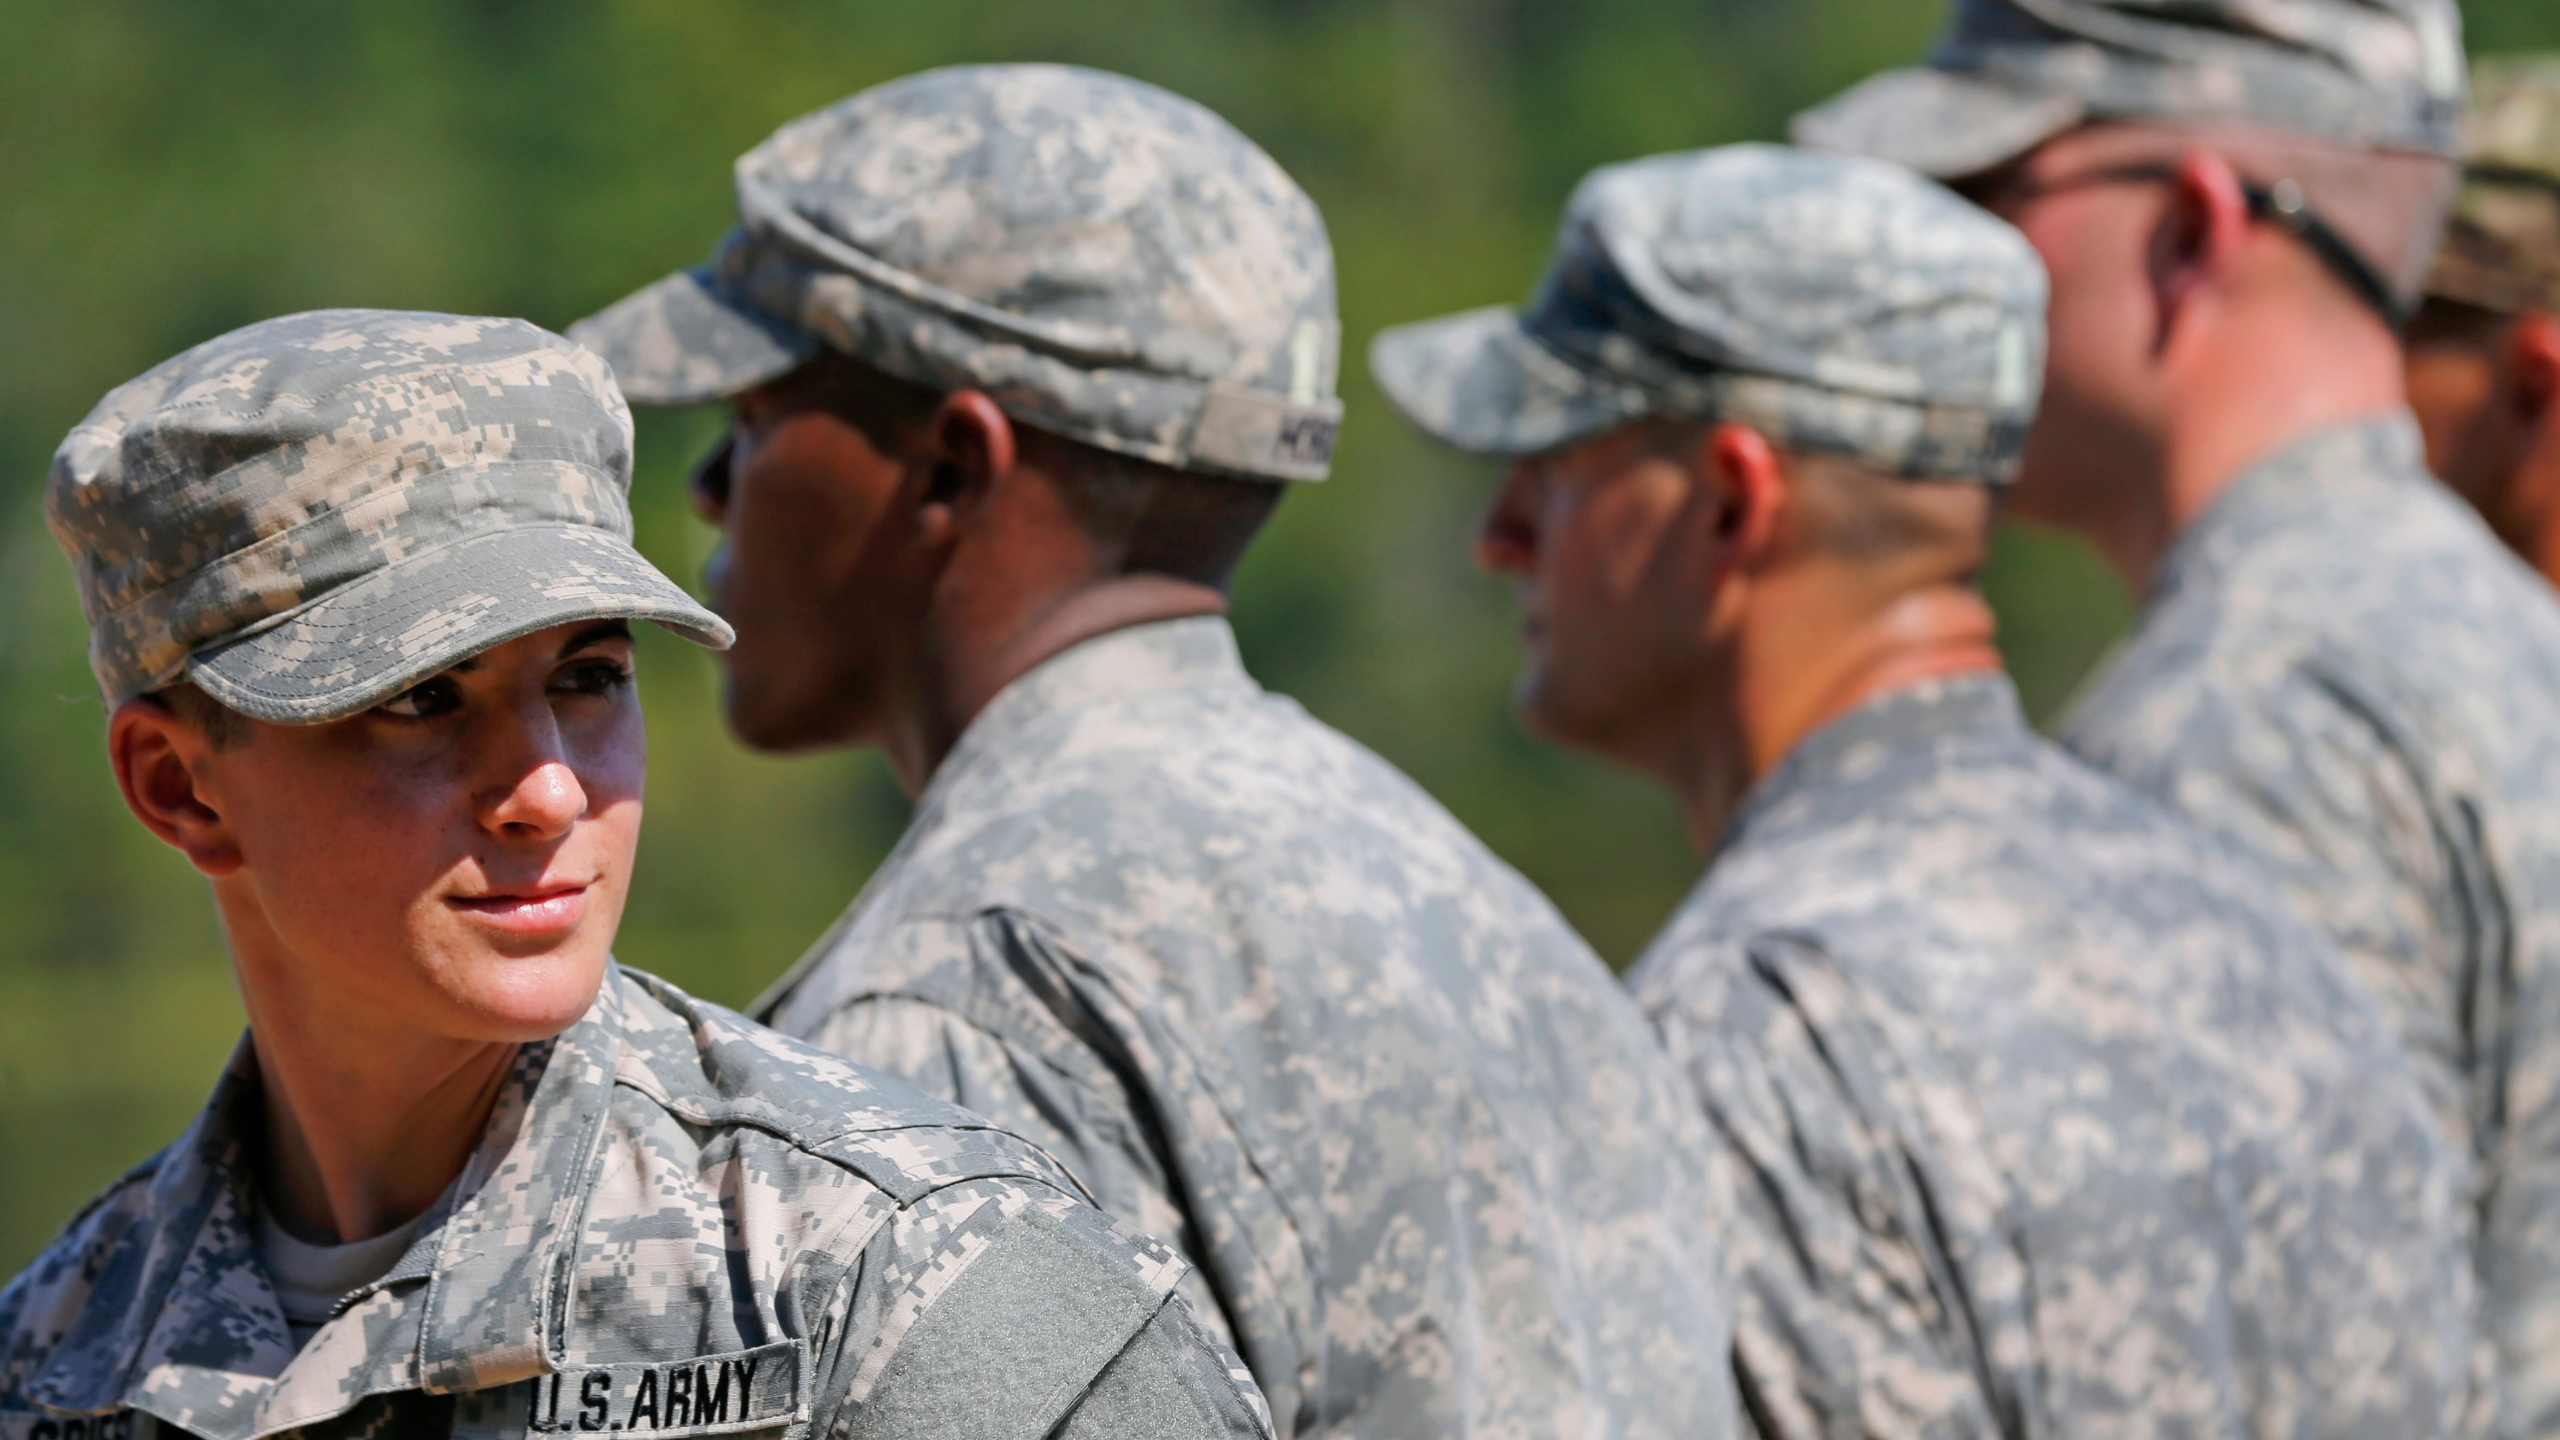 In this Aug. 21, 2015 file photo, U.S. Army Capt. Kristen Griest, left, of Orange, Conn., stands in formation during an Army Ranger School graduation ceremony at Fort Benning, Ga. A federal appeals court ruled on Thursday, Aug. 13, 2020, that the military's all-male draft system is constitutional.. (AP Photo/John Bazemore, File)